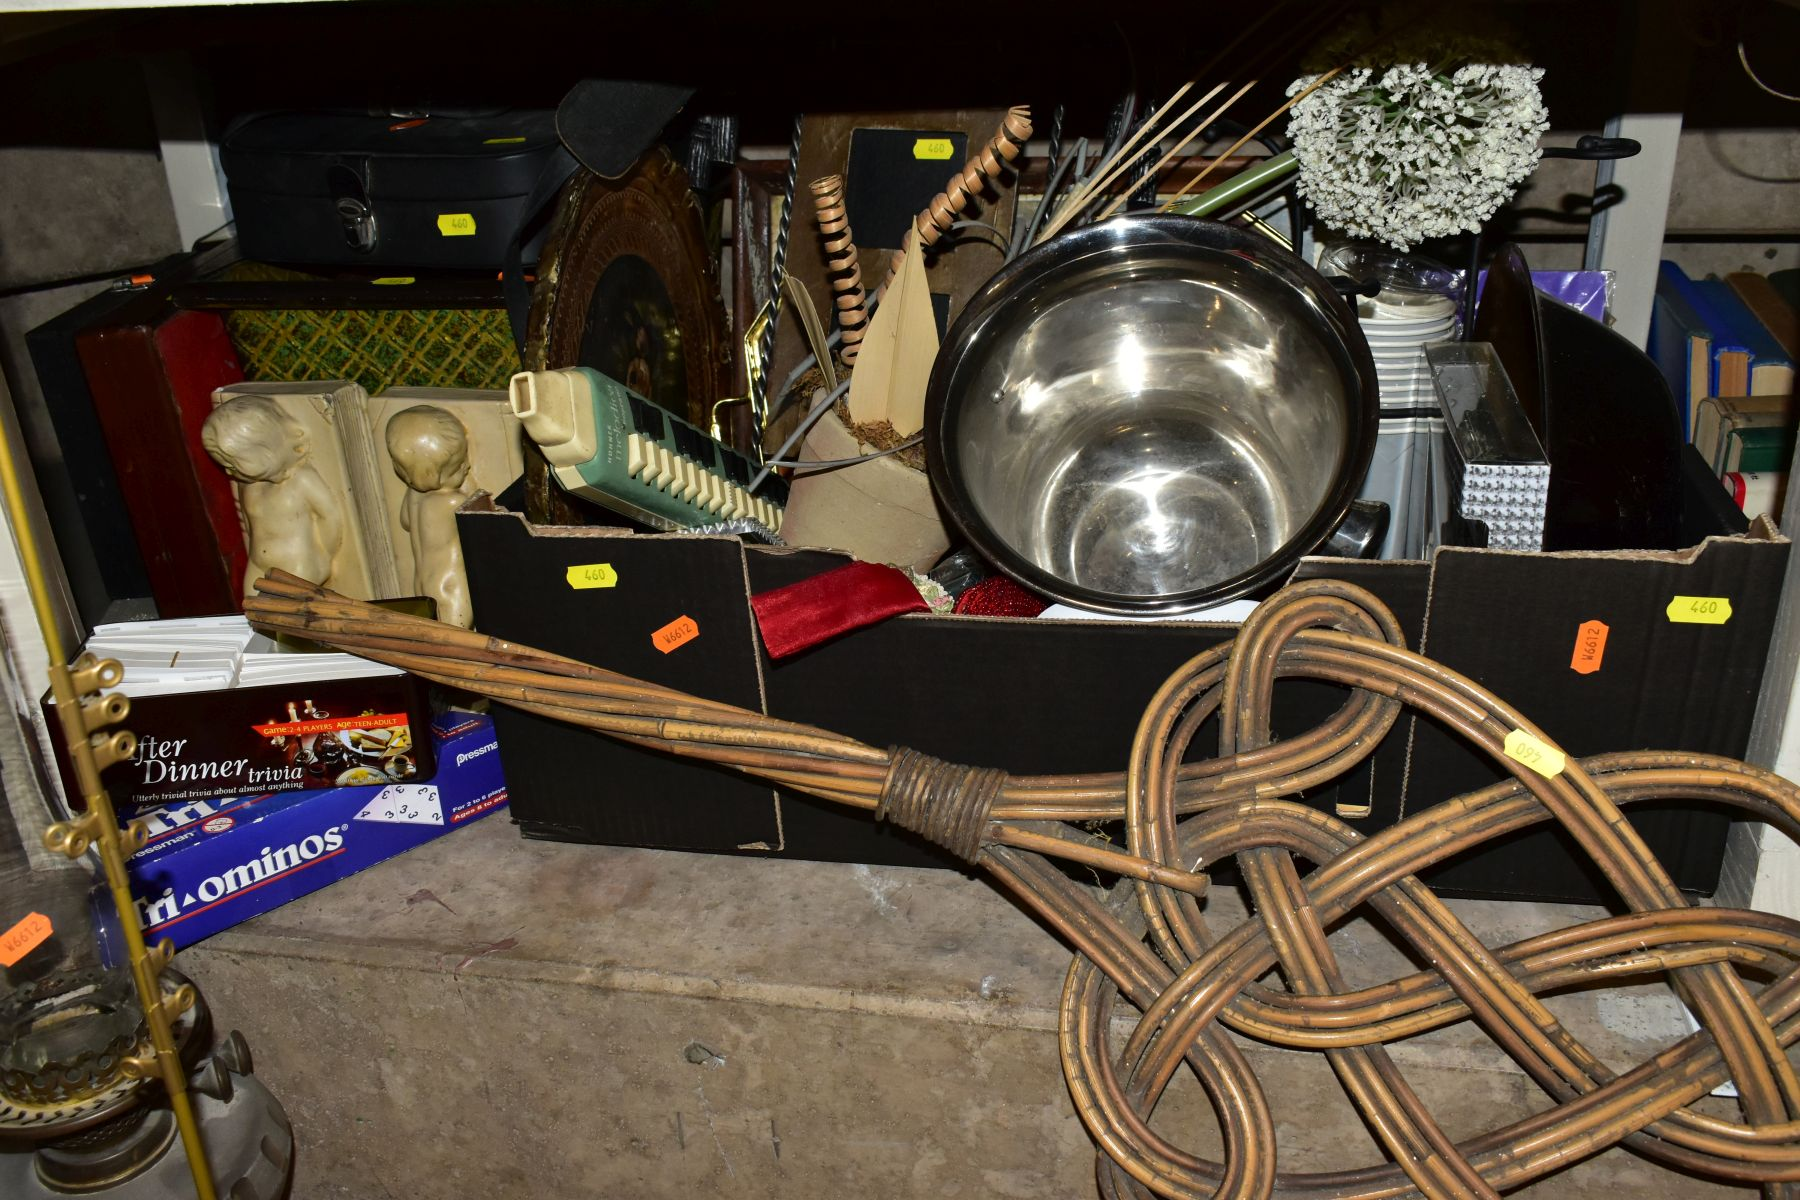 FOUR BOXES AND LOOSE METALWARE, HOUSEHOLD SUNDRIES, OIL LAMP, etc, to include board games, book - Image 3 of 16